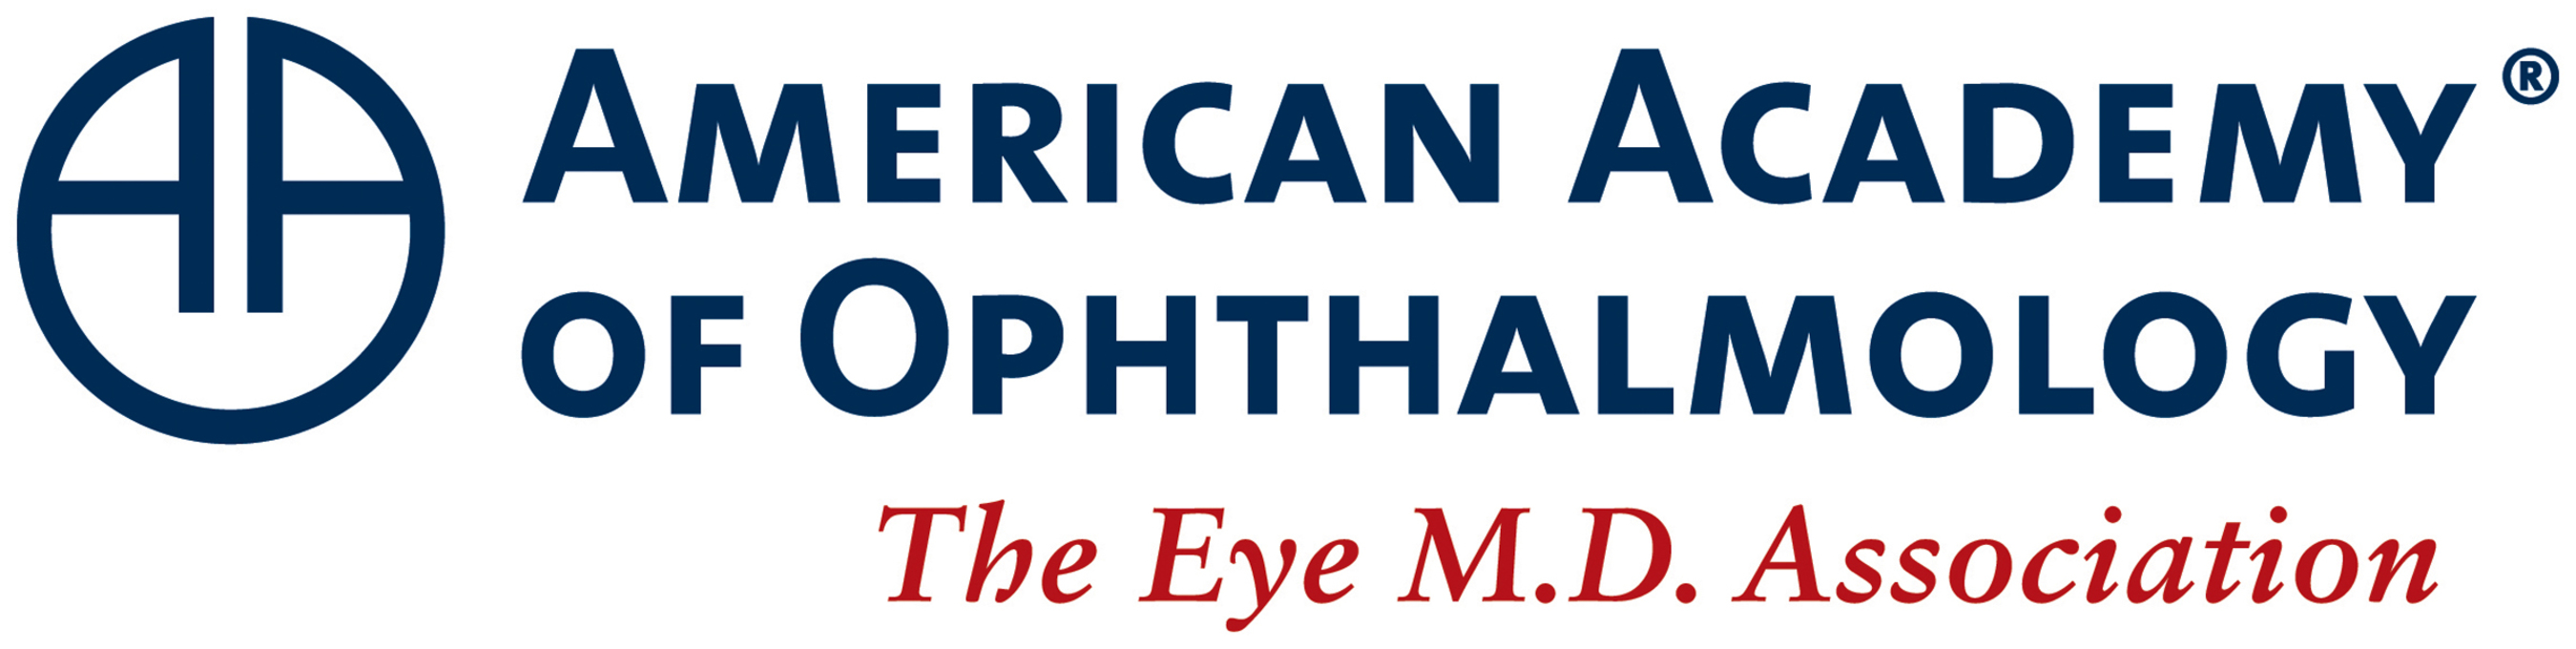 American Academy of Ophthalmology Logo.